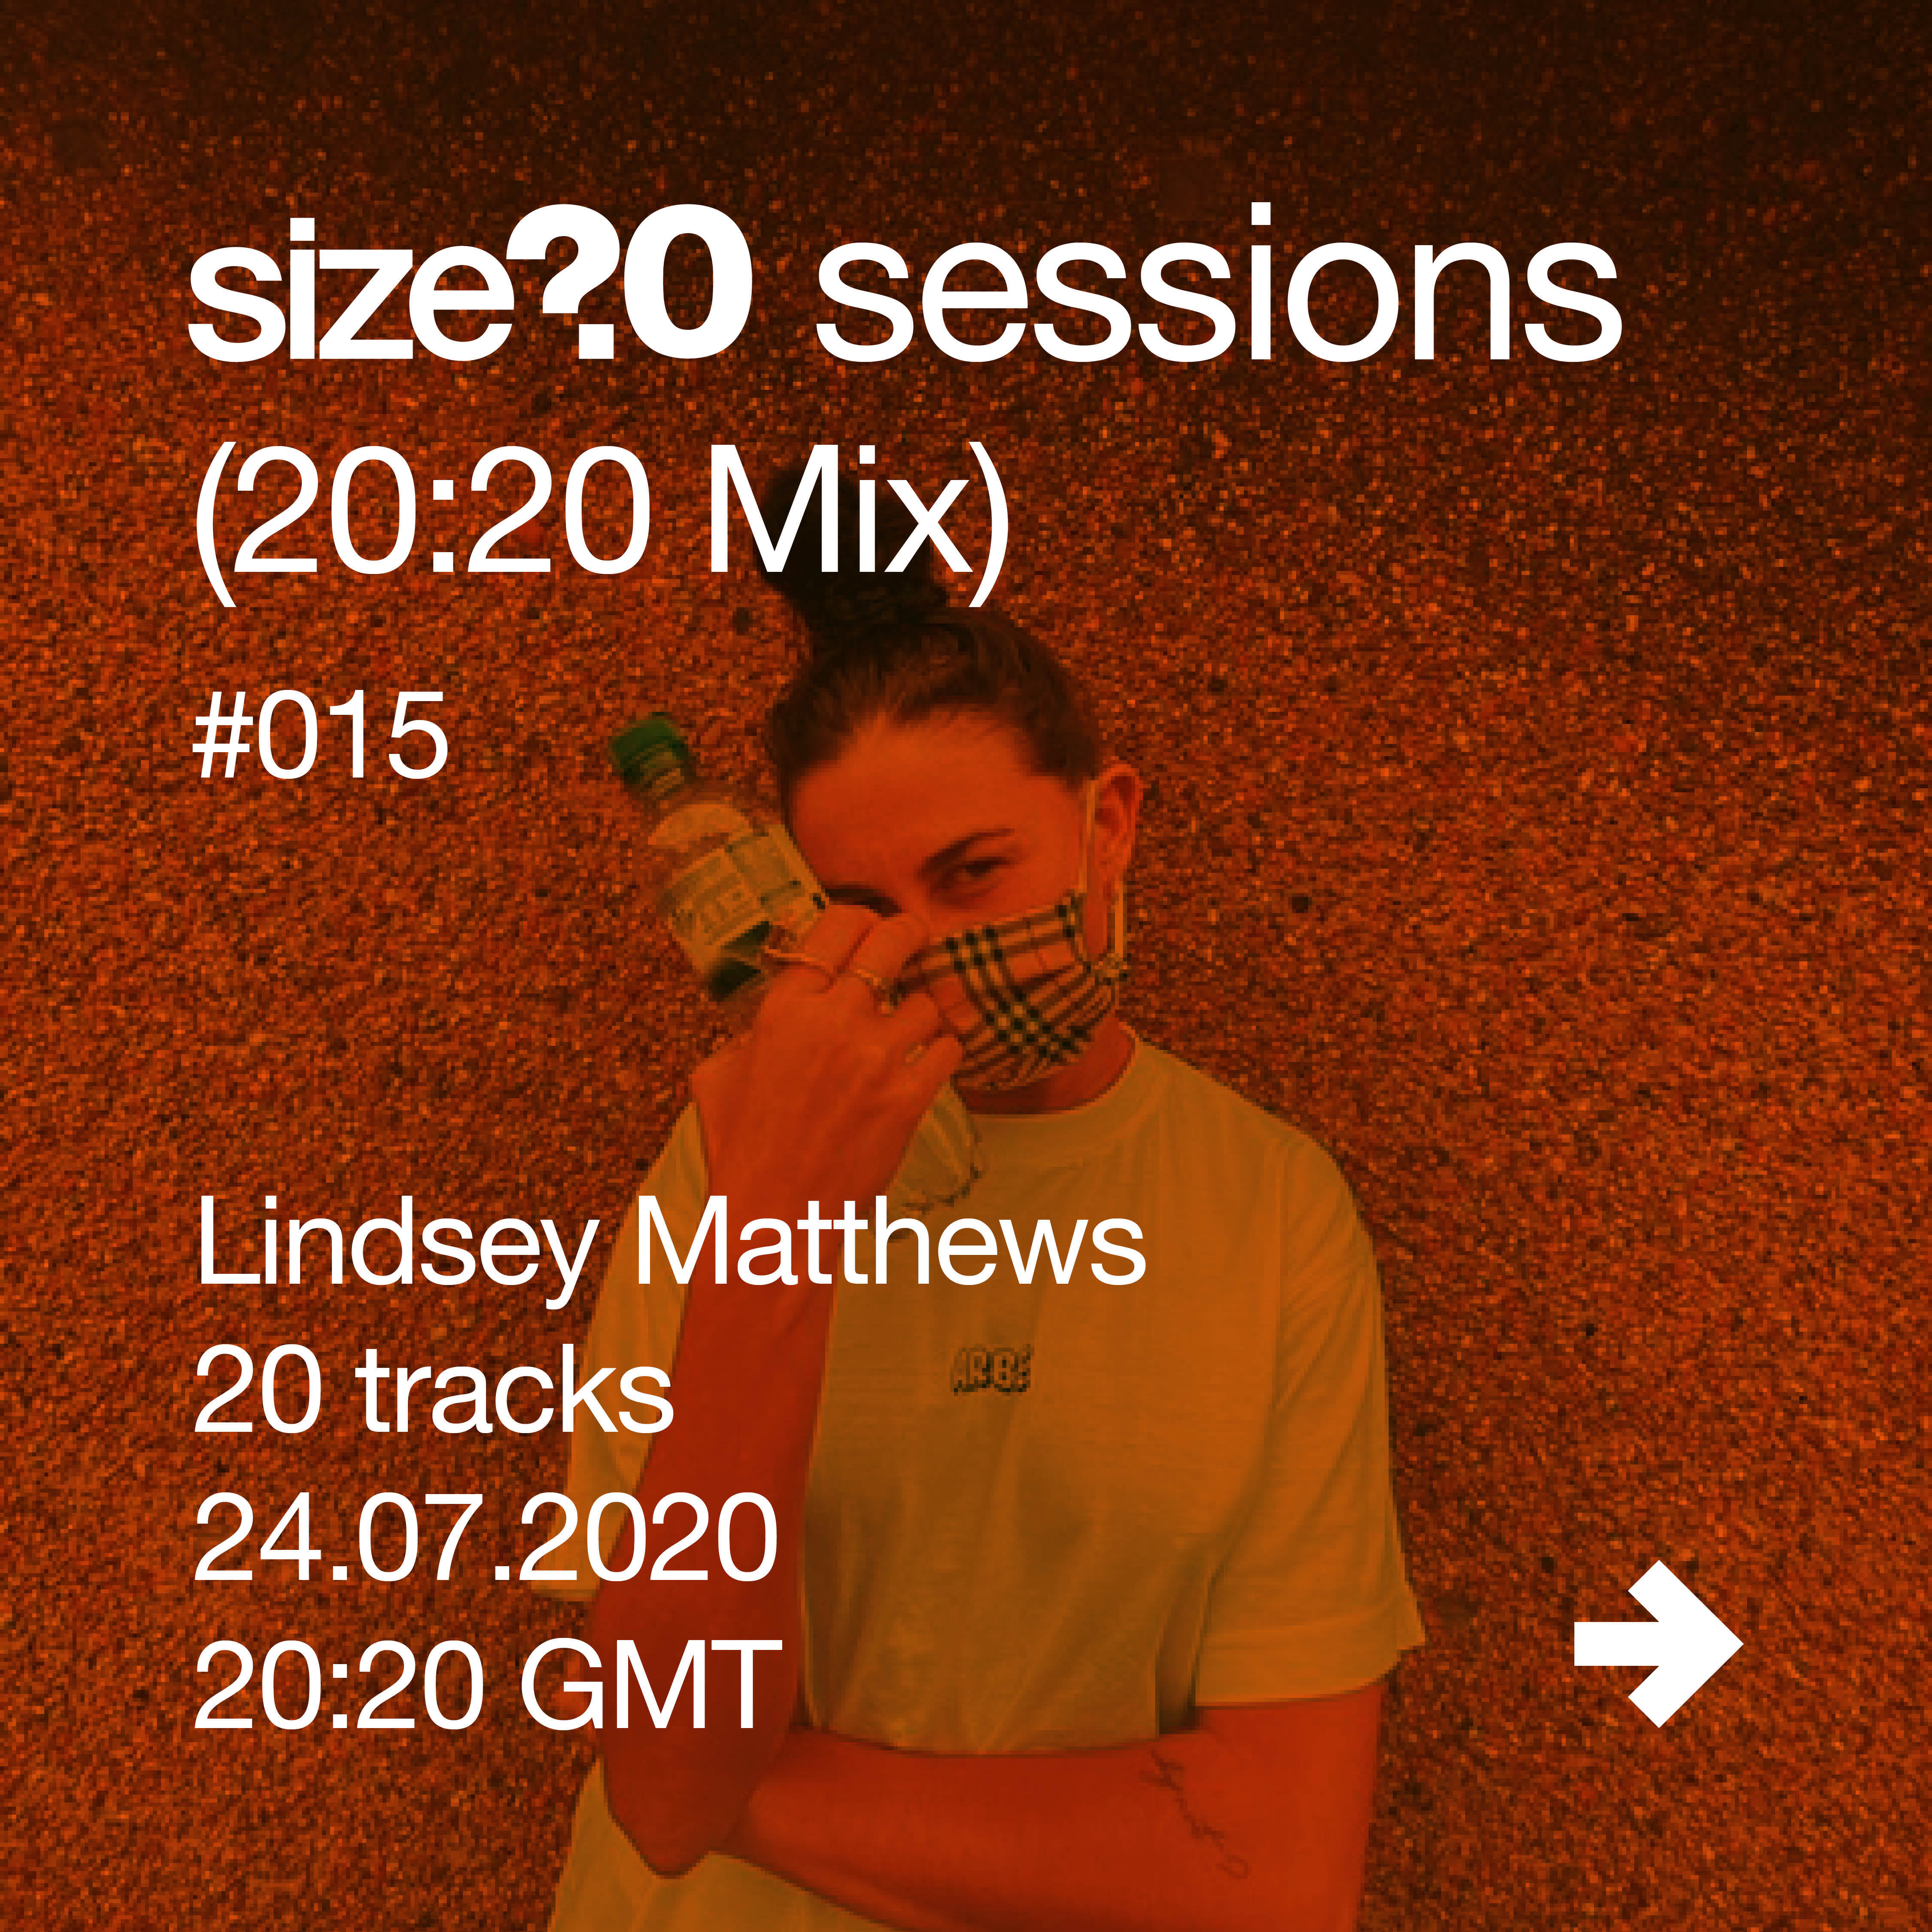 Get to know Lindsey Matthews ahead of her size? sessions (20:20 Mix)